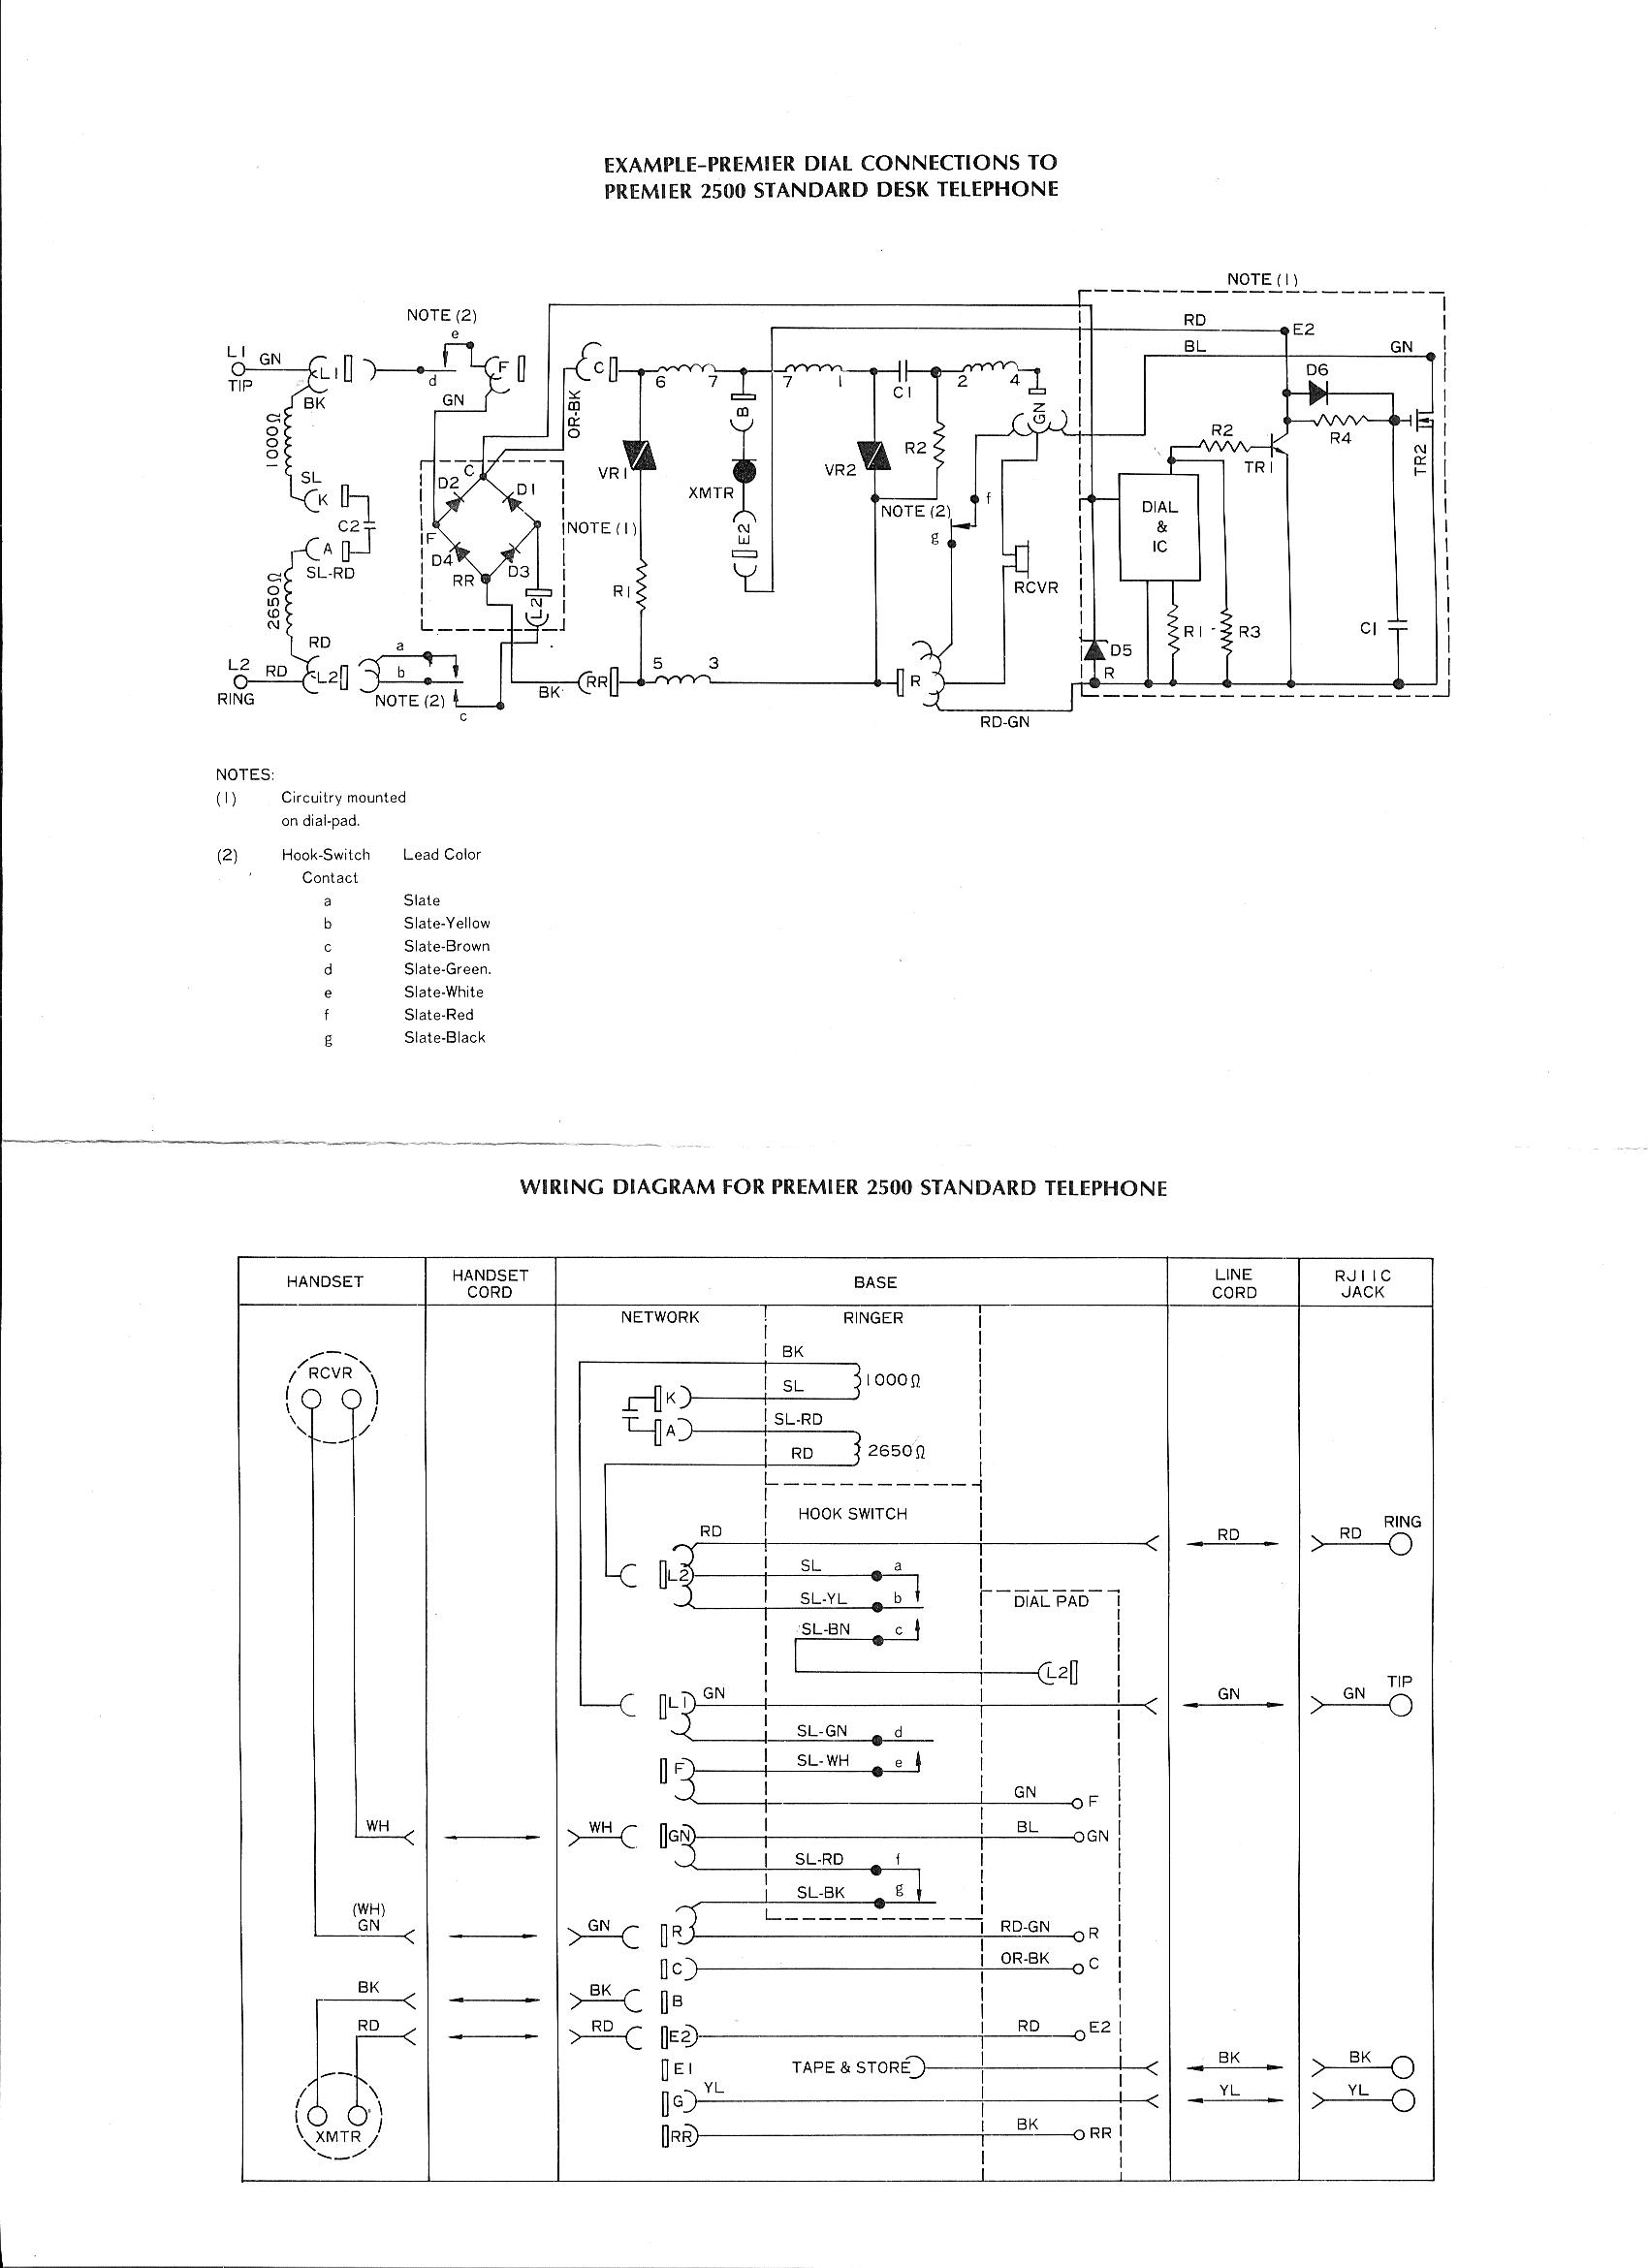 telephone technical references Wiring a Non-Computer 700R4 2500 schematic